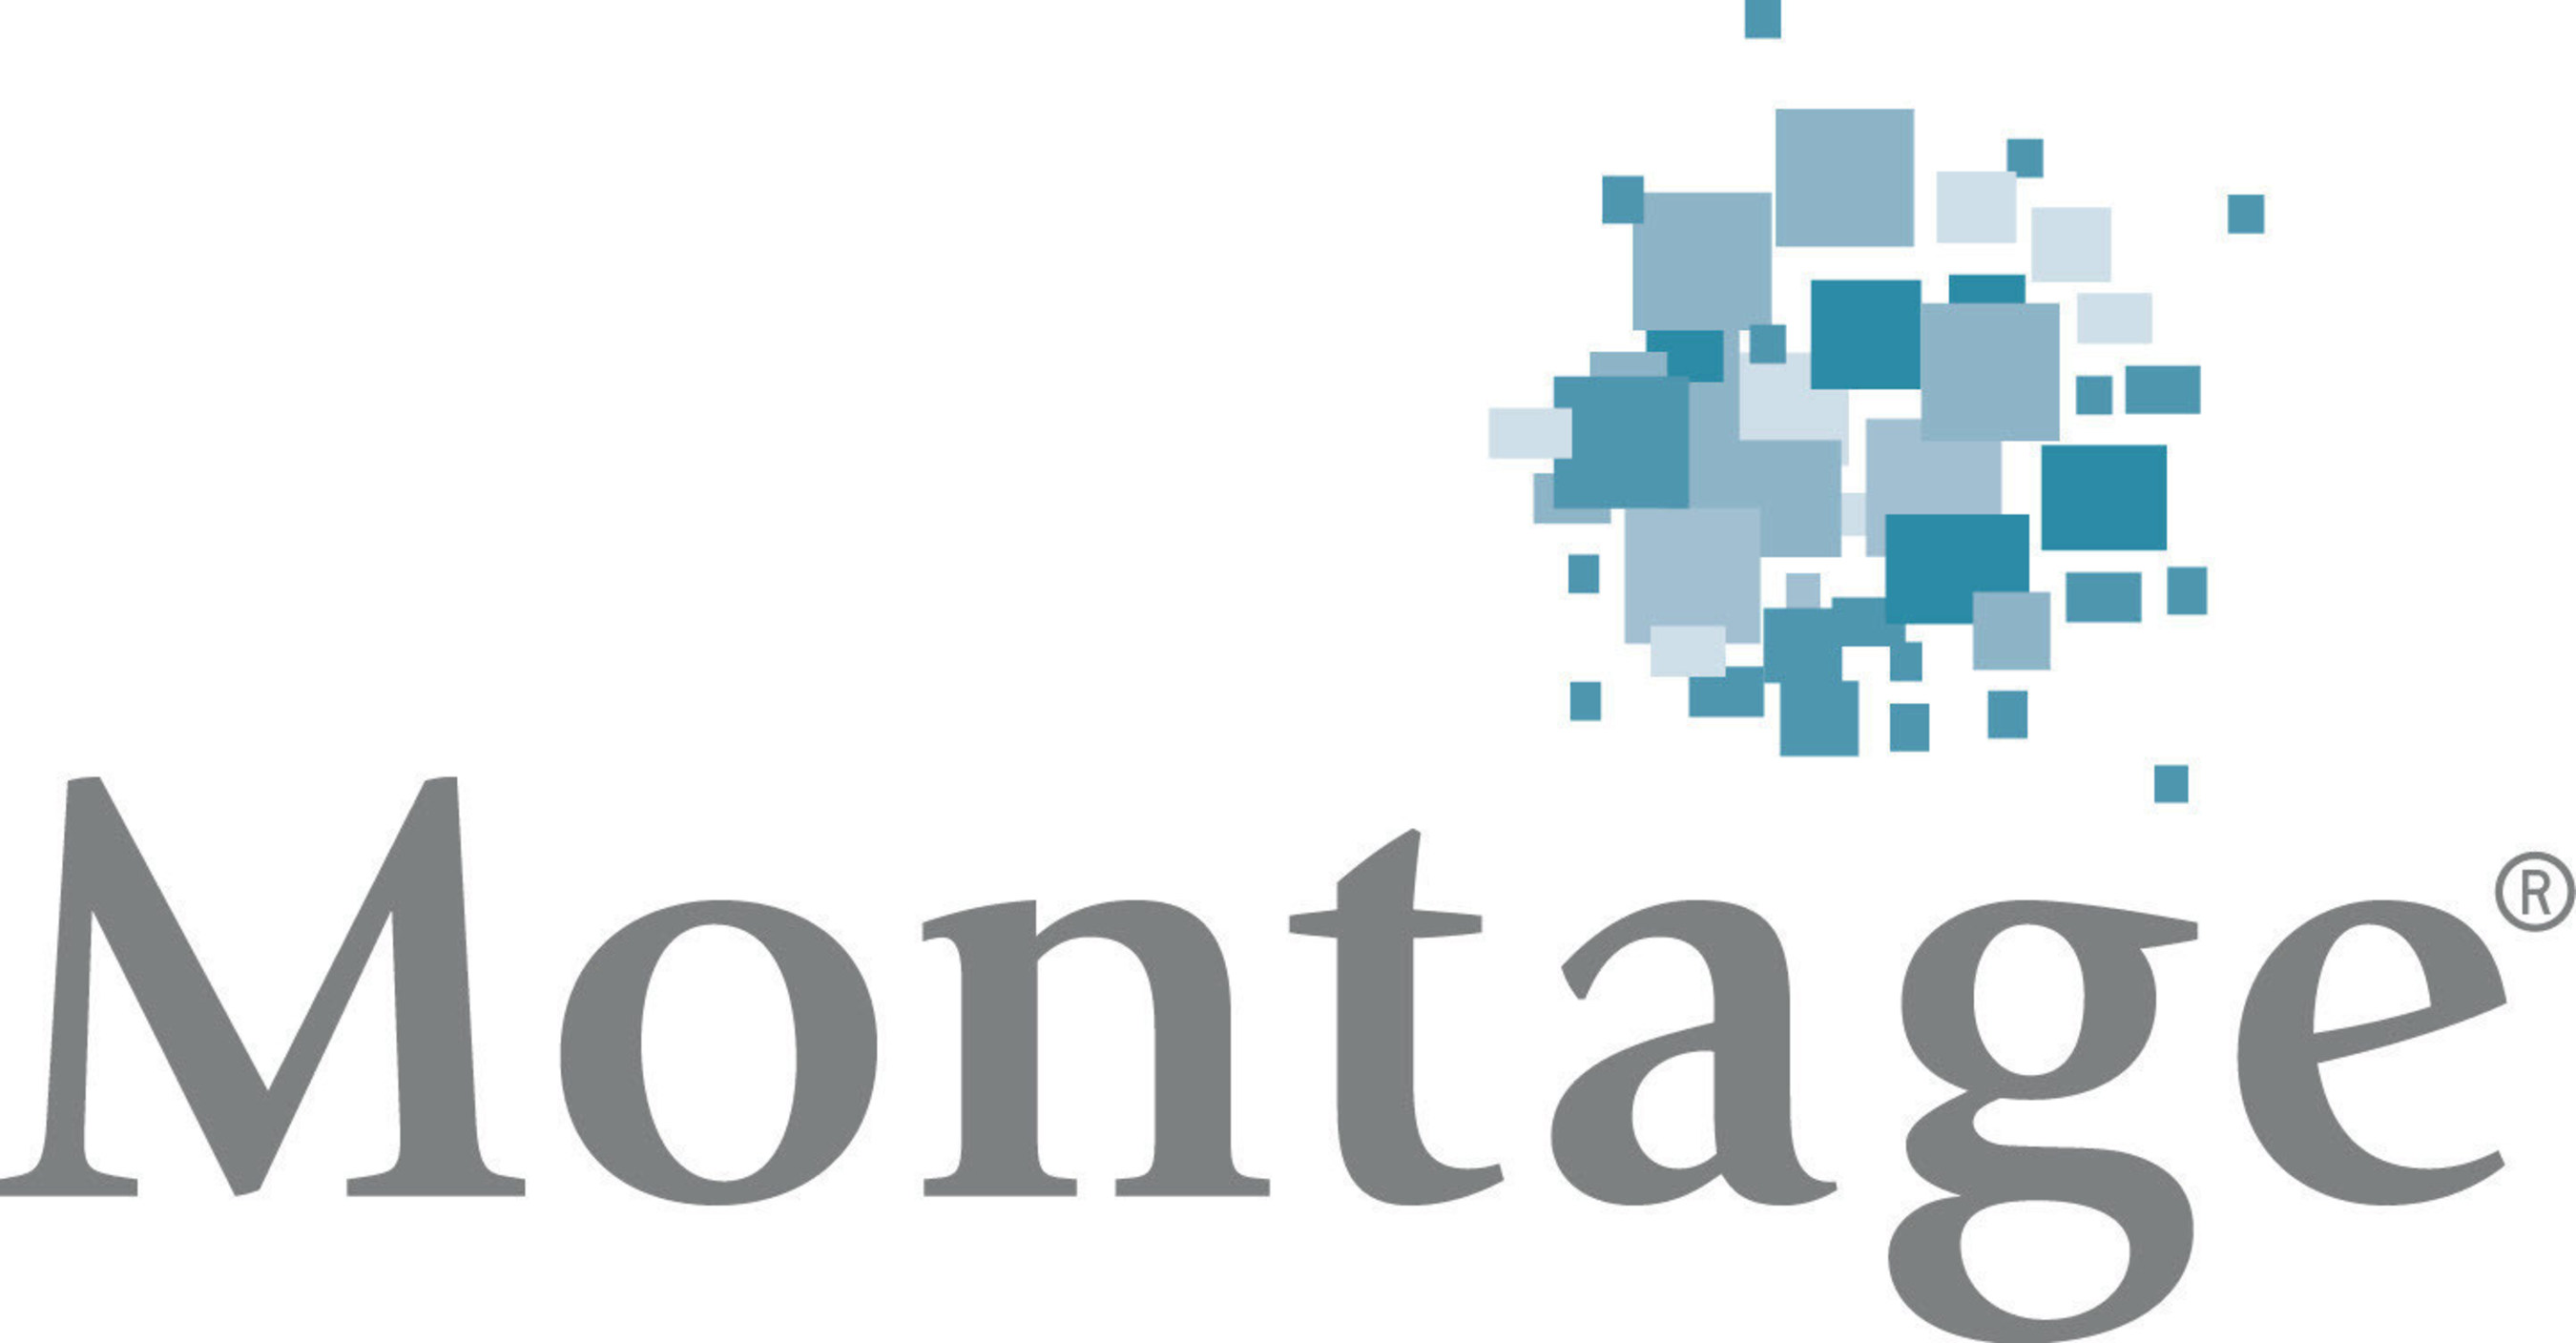 MONTAGE EXPANDS PARTNERSHIP WITH MANPOWERGROUP THROUGH RIGHT MANAGEMENT'S RIGHTEVERYWHERE'